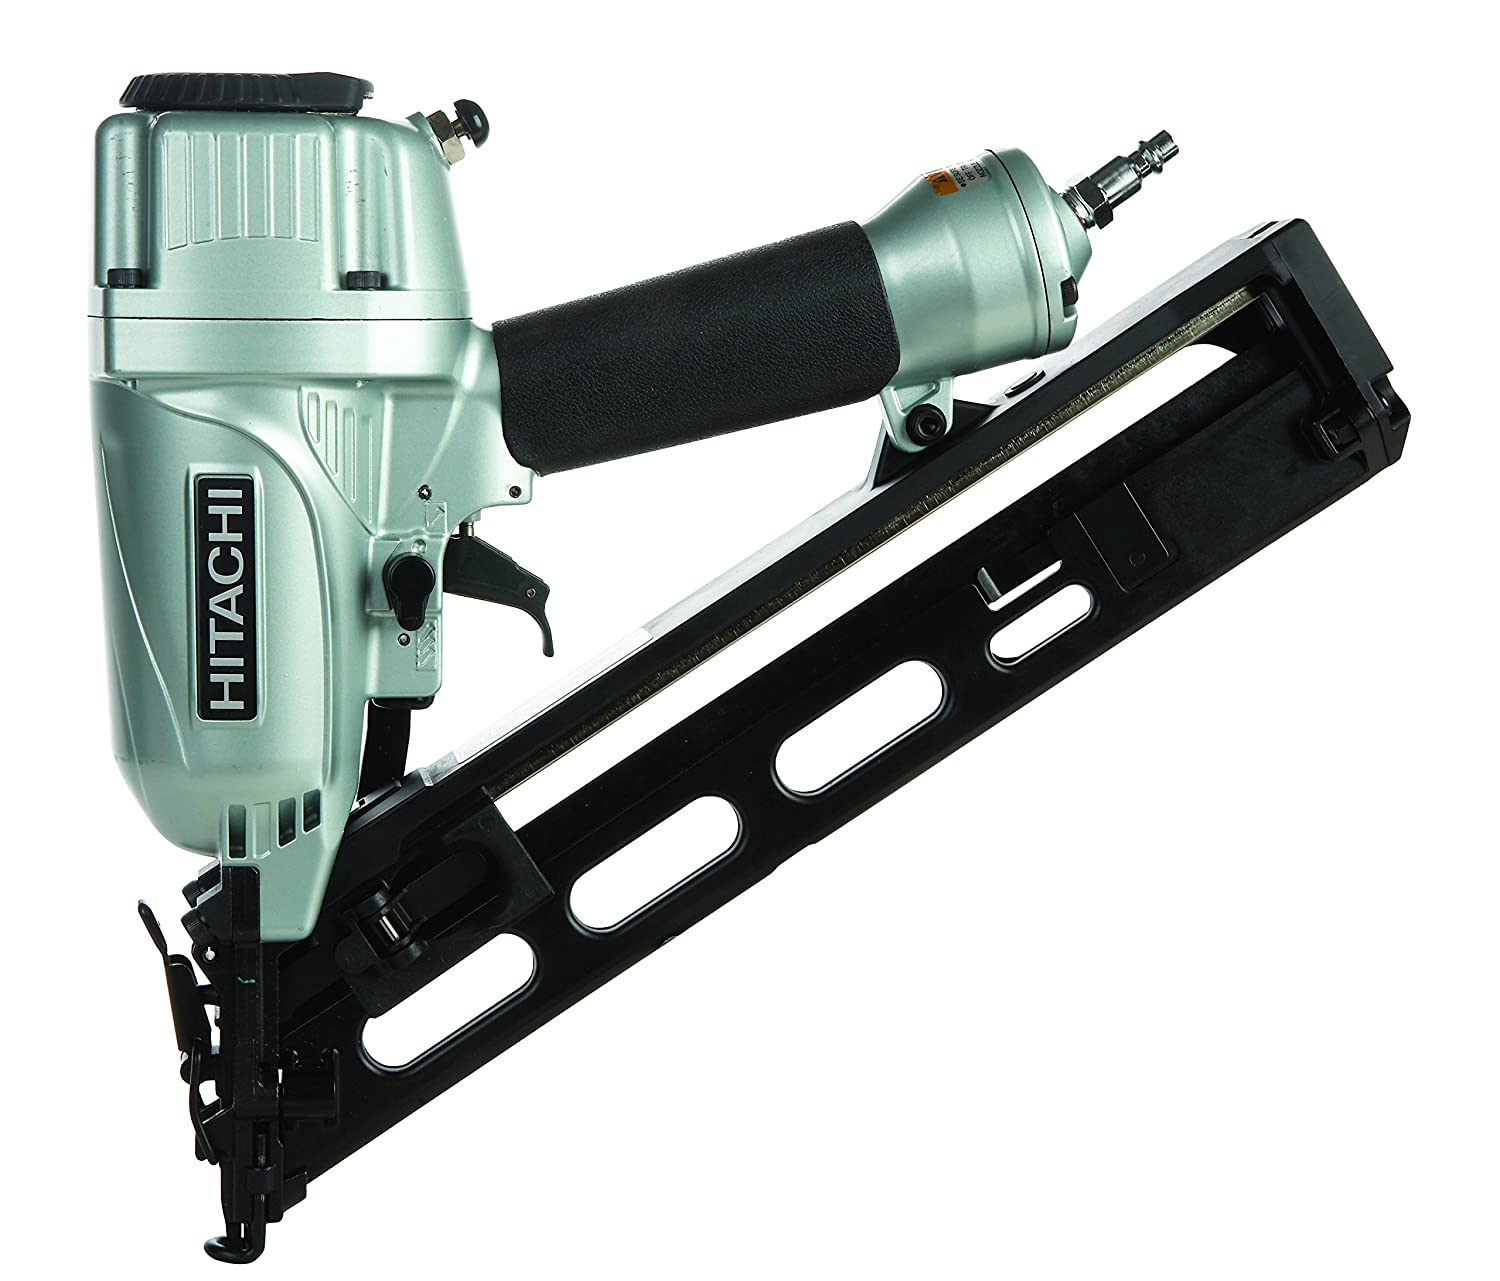 Hitachi NT65MA4 1 1 4 Inch to 2 1 2 Inch 15 Gauge Angled Finish Nailer with Air Duster